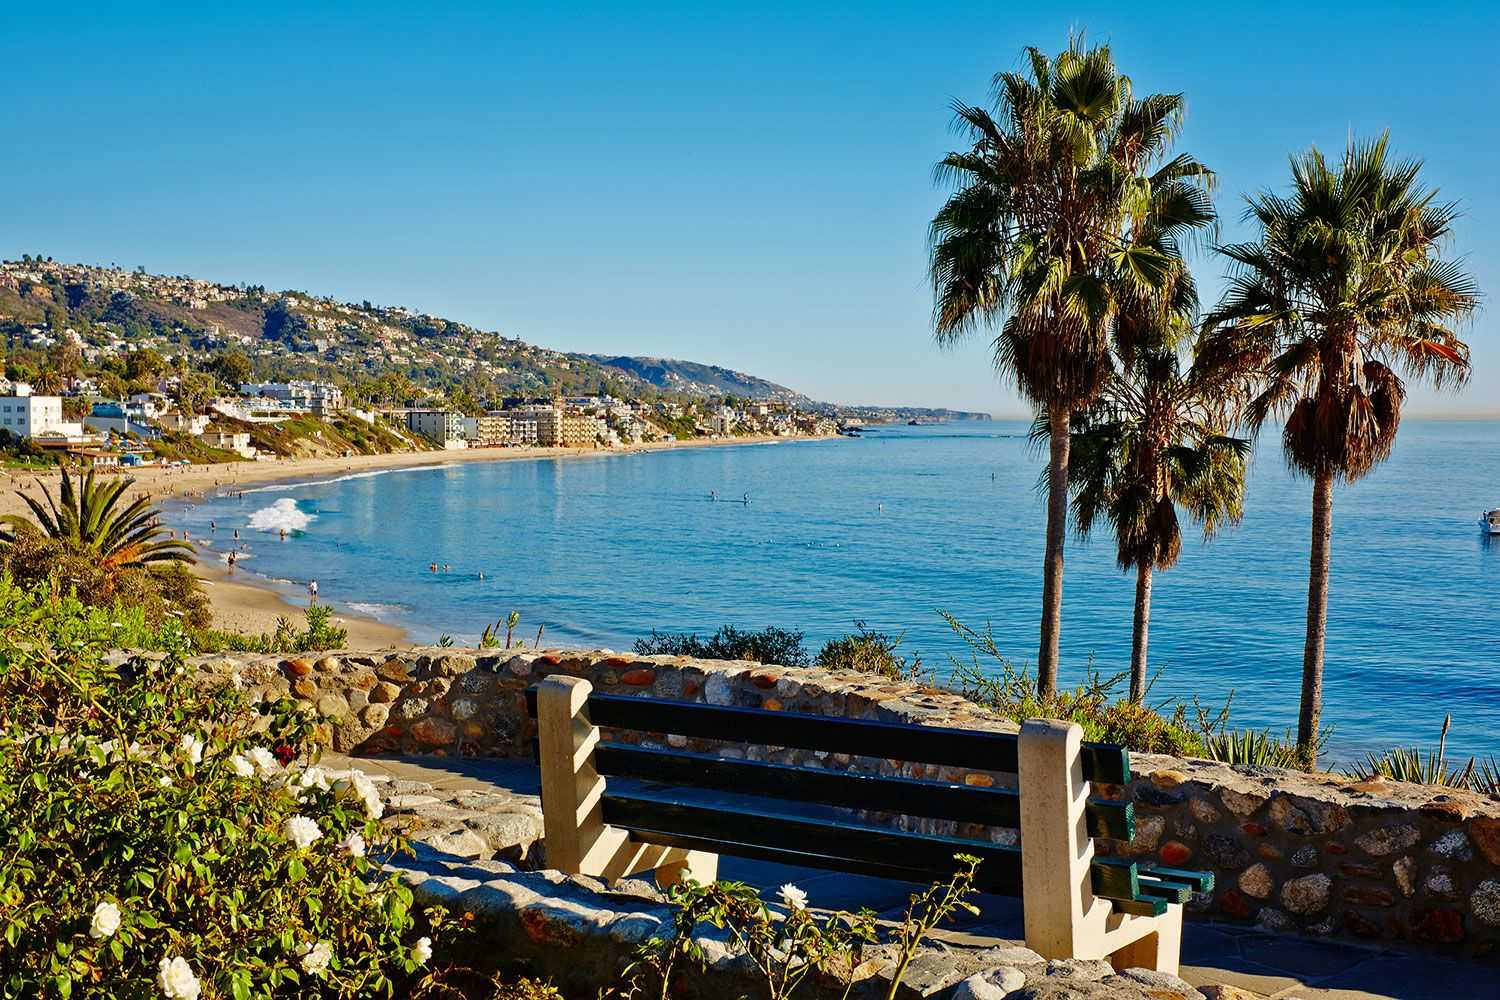 Orange county luxury homes and condos coastal real estate info for Laguna beach luxury real estate